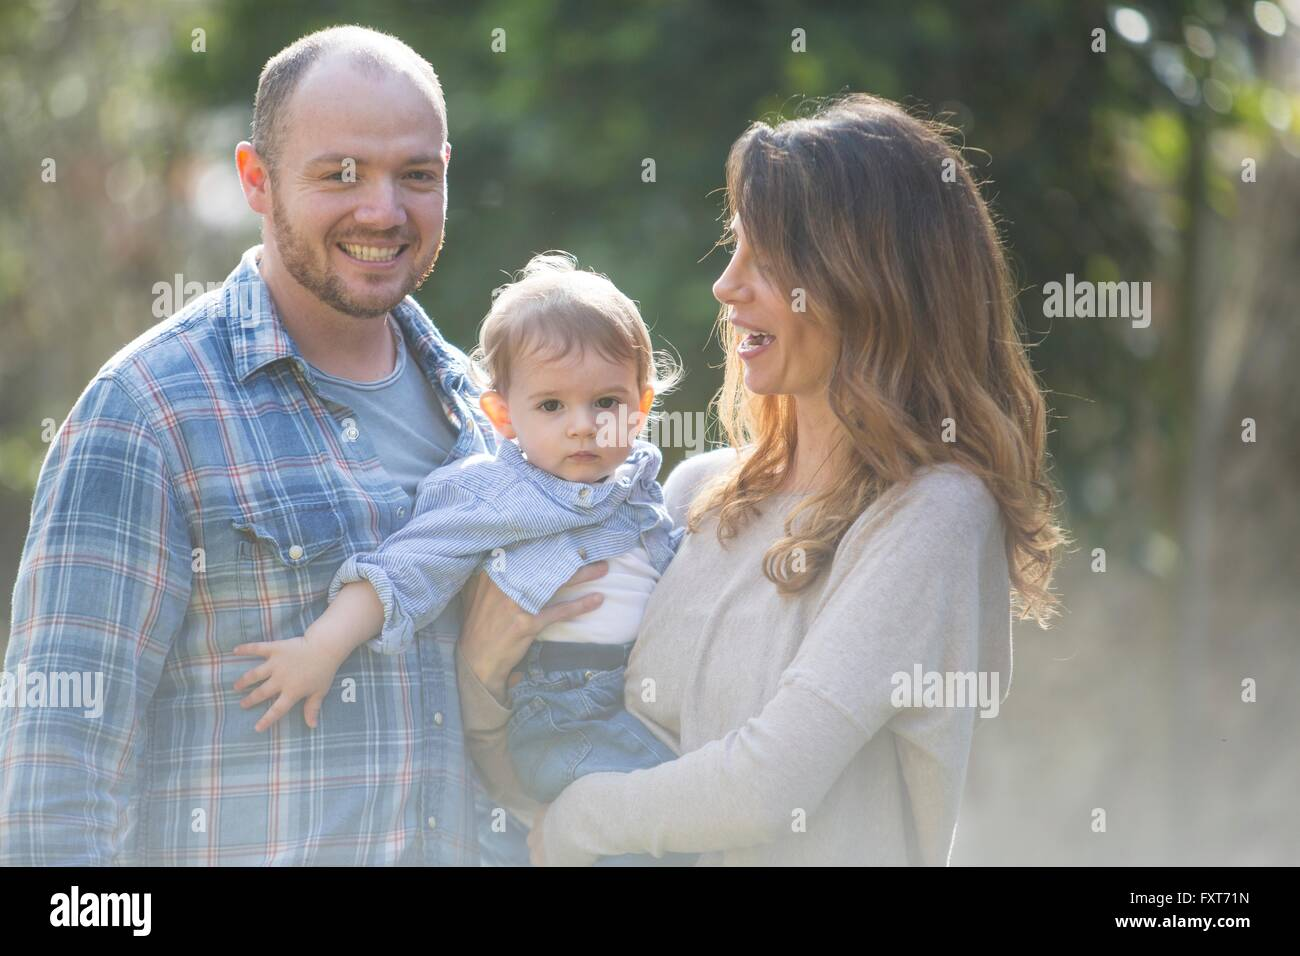 Smiling parents holding baby boy Photo Stock